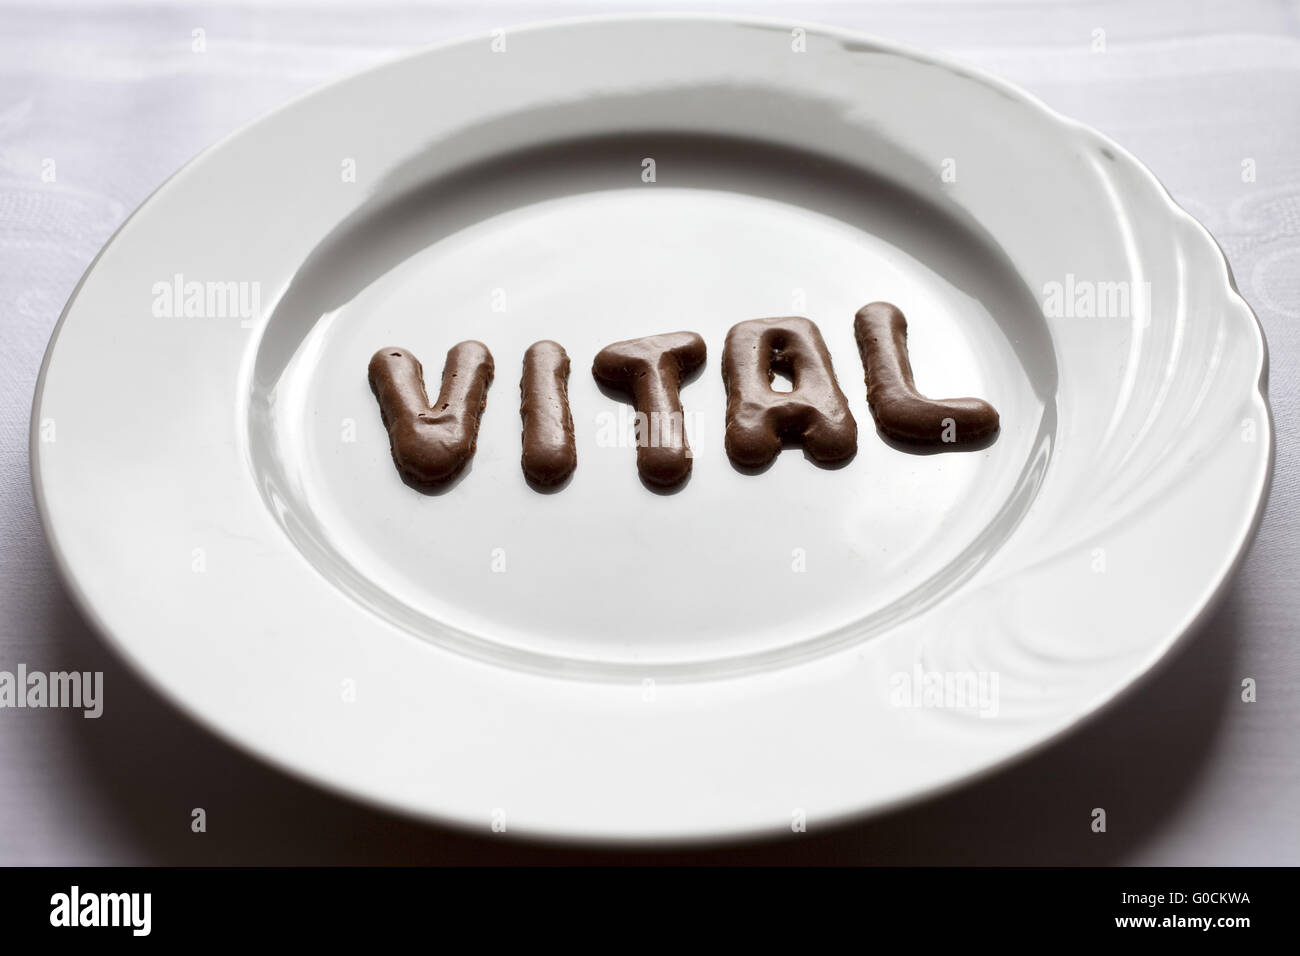 Letters forming the word vital on a plate - Stock Image